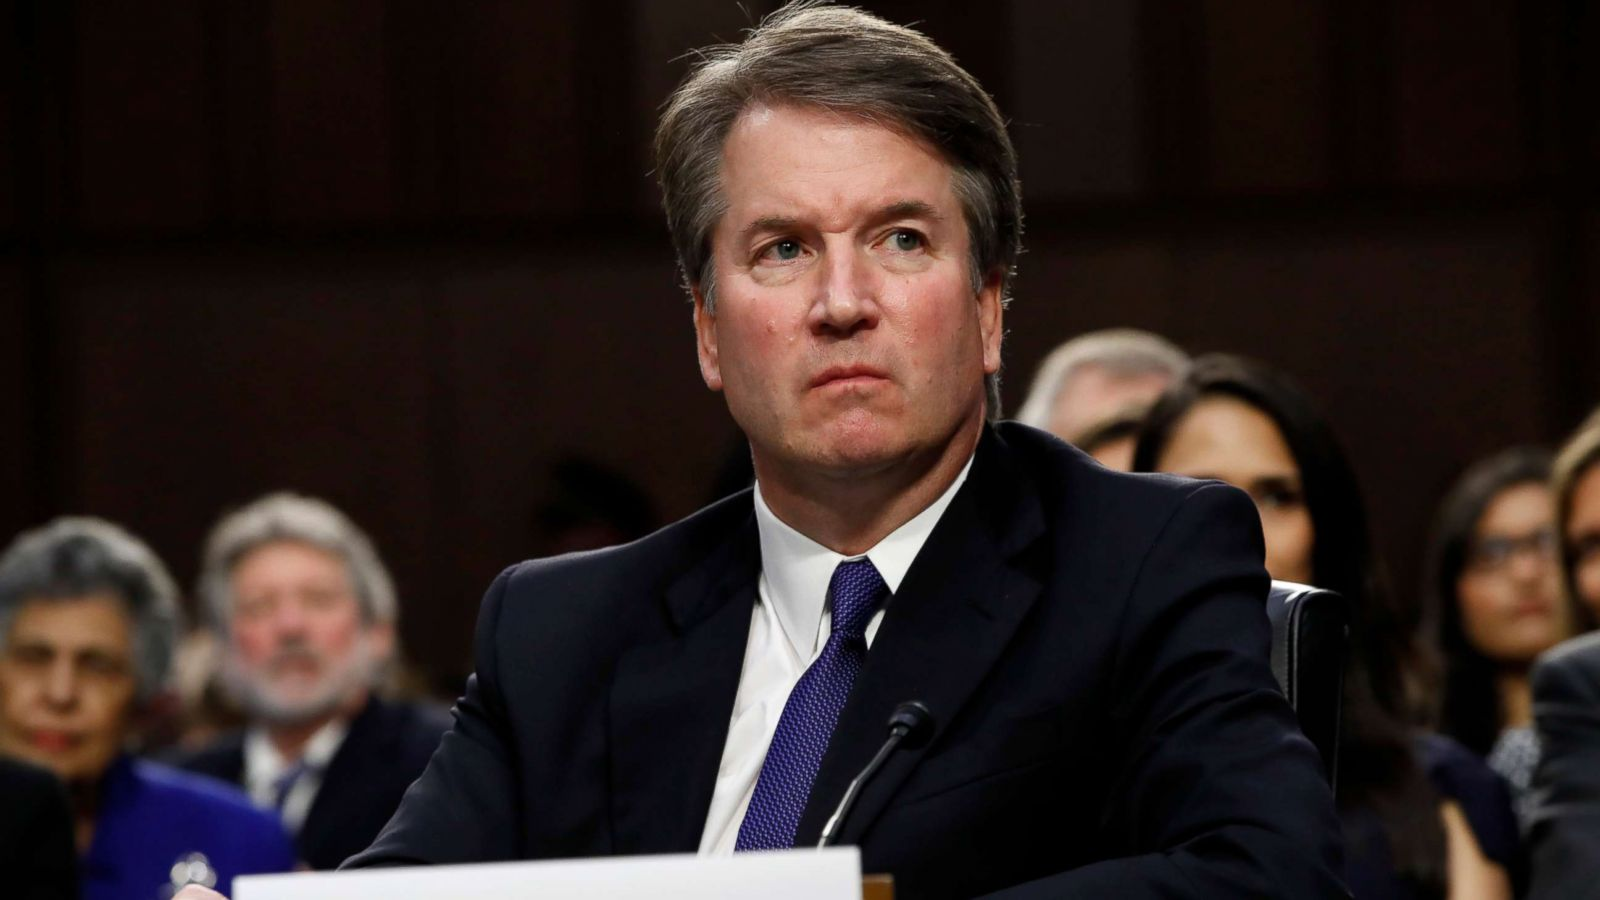 abcnews.go.com - ABCNews - 2nd woman accuses Brett Kavanaugh of sexual misconduct: Report